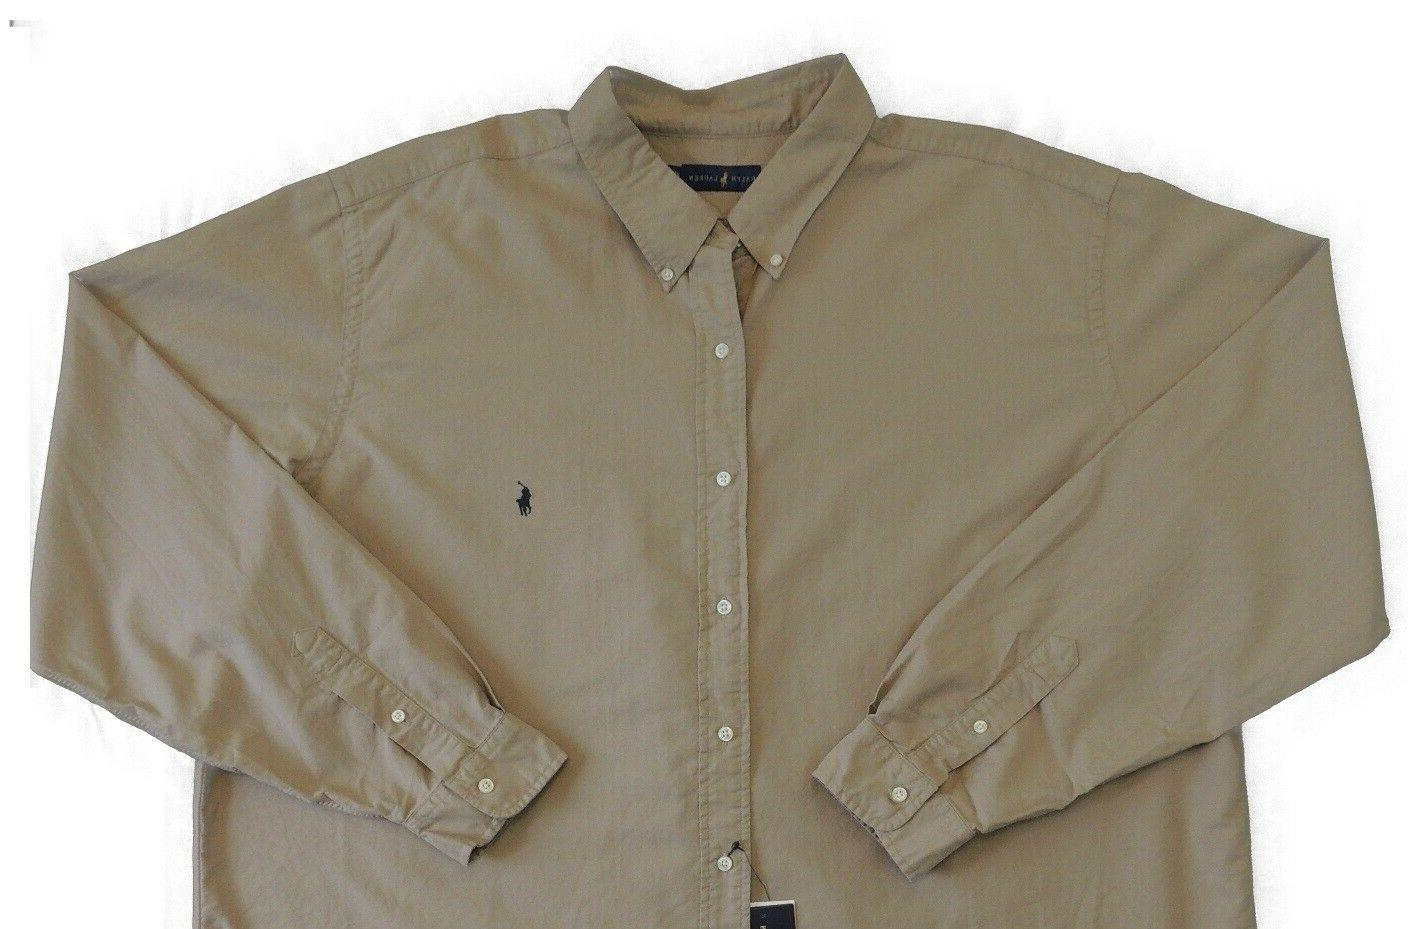 Polo Button Classic Oxford Shirt 3XB Tan